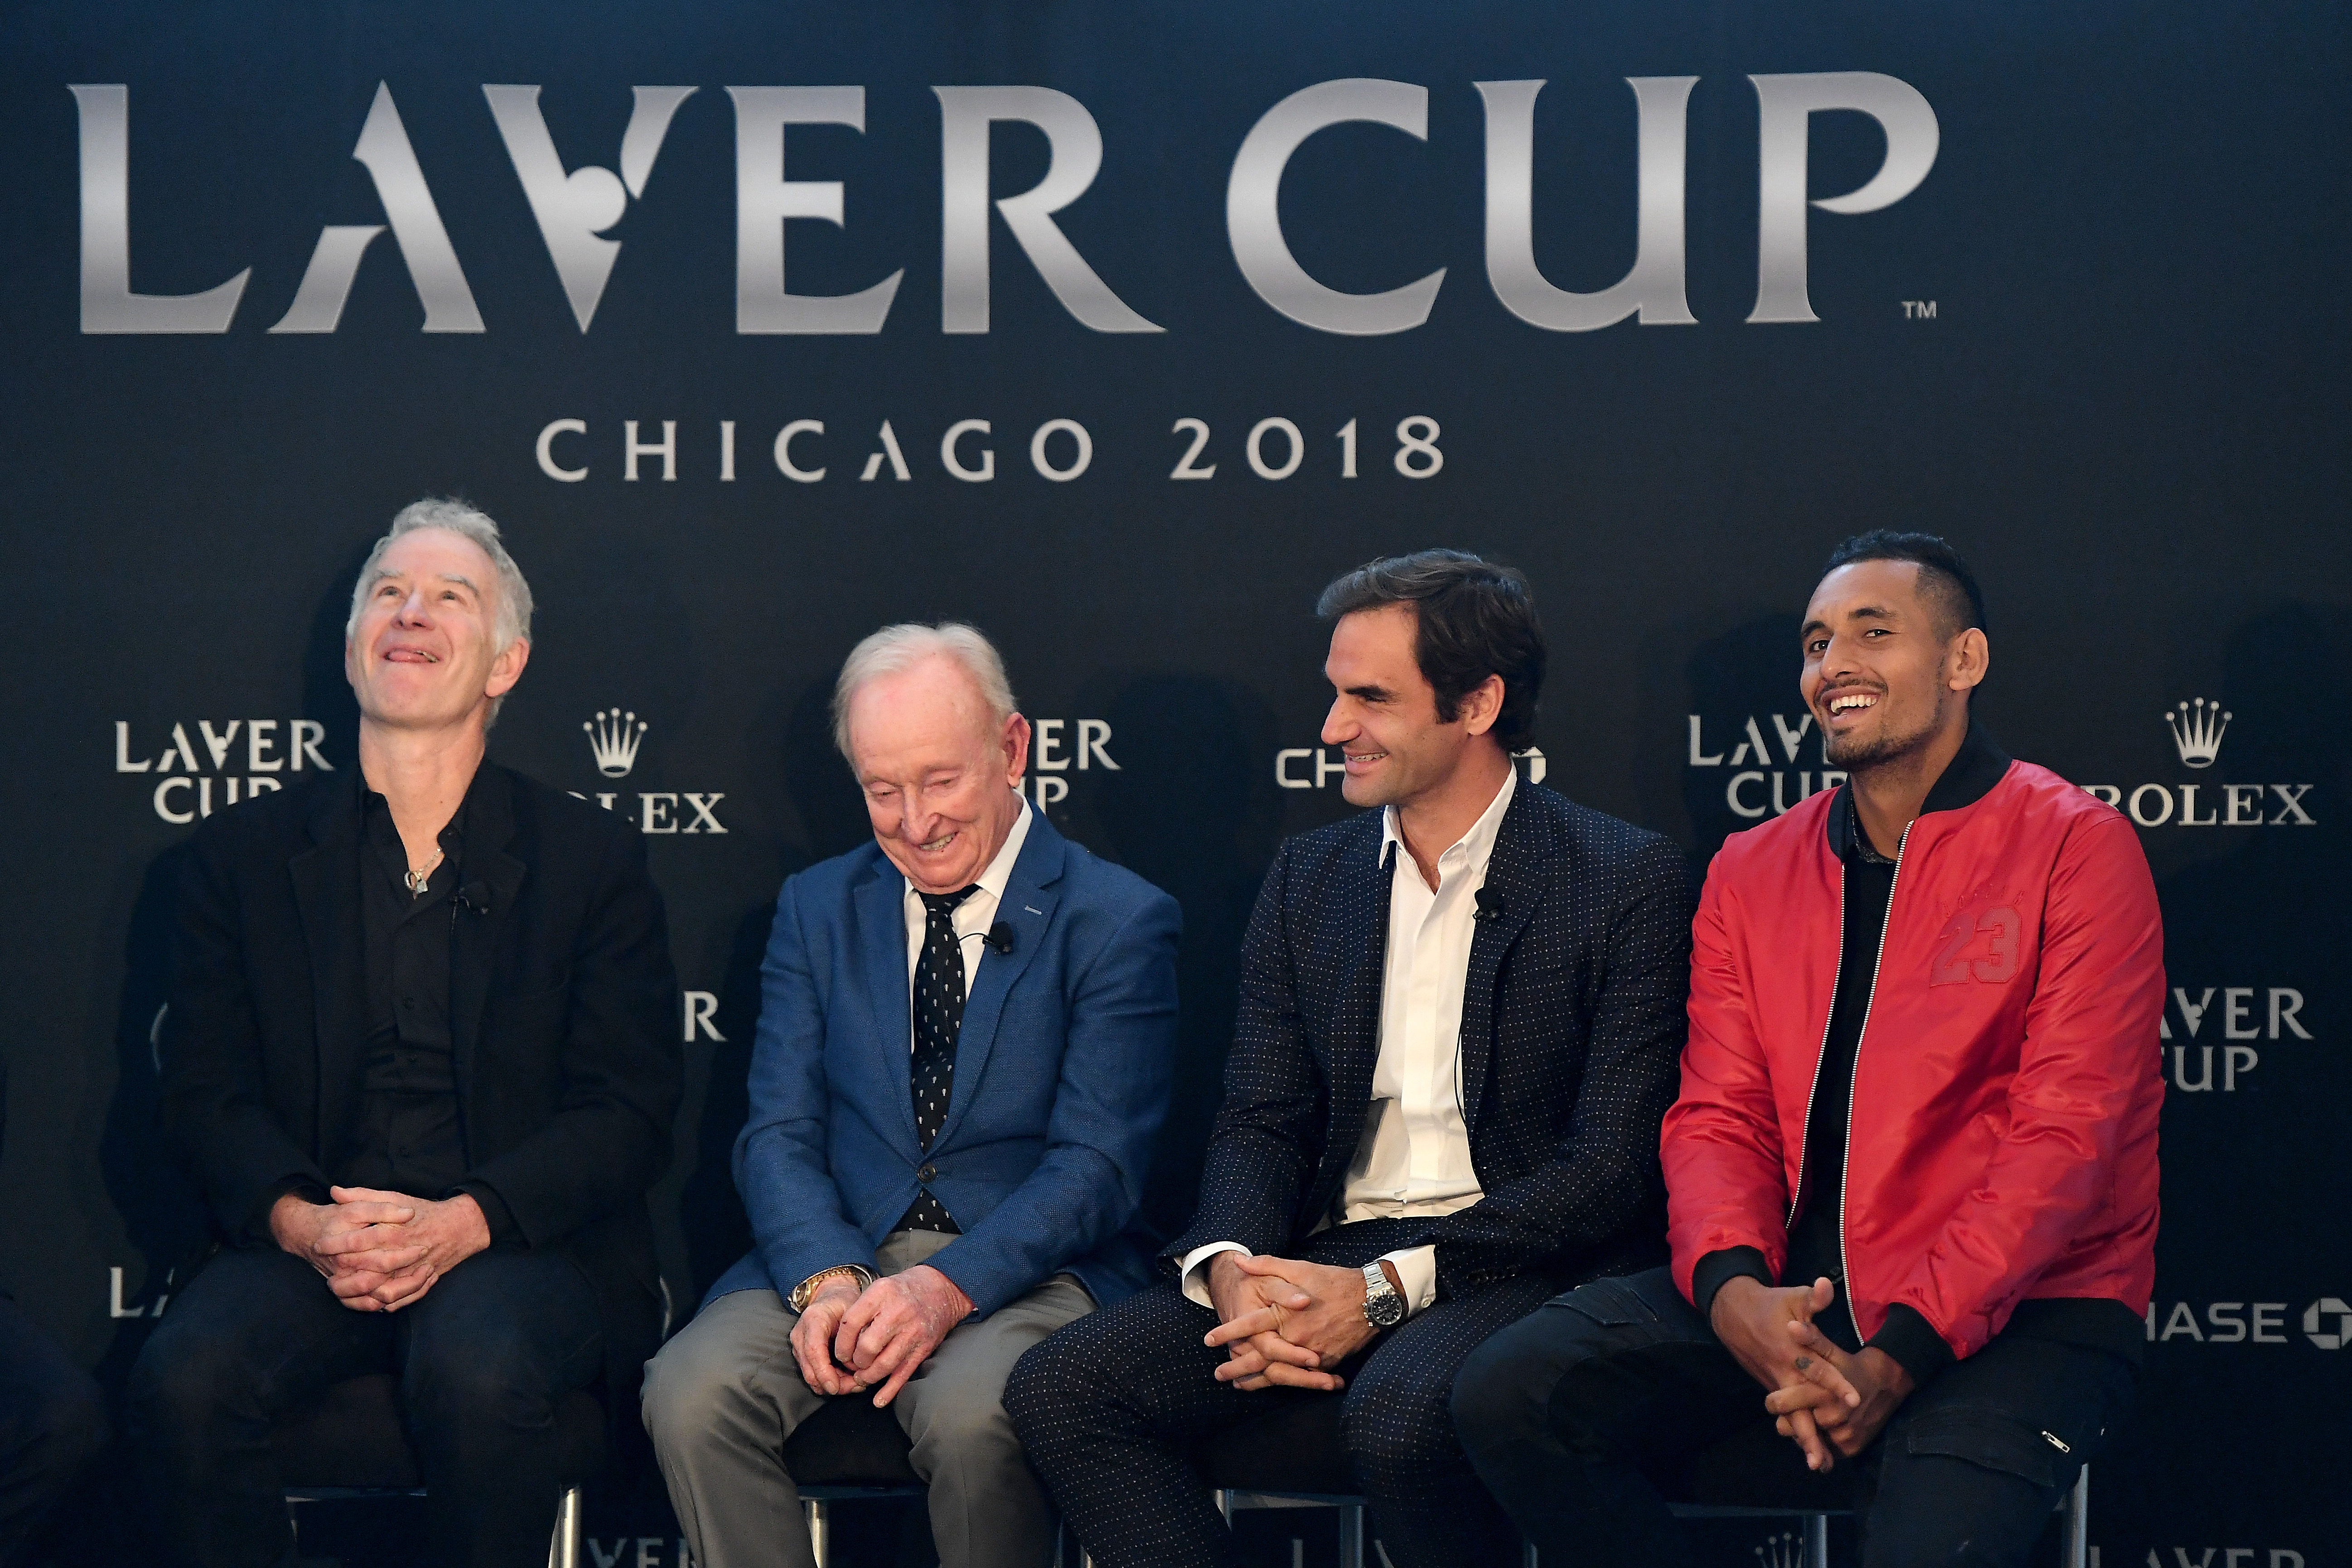 Roger Federer helps launch 2018 Laver Cup in Chicago